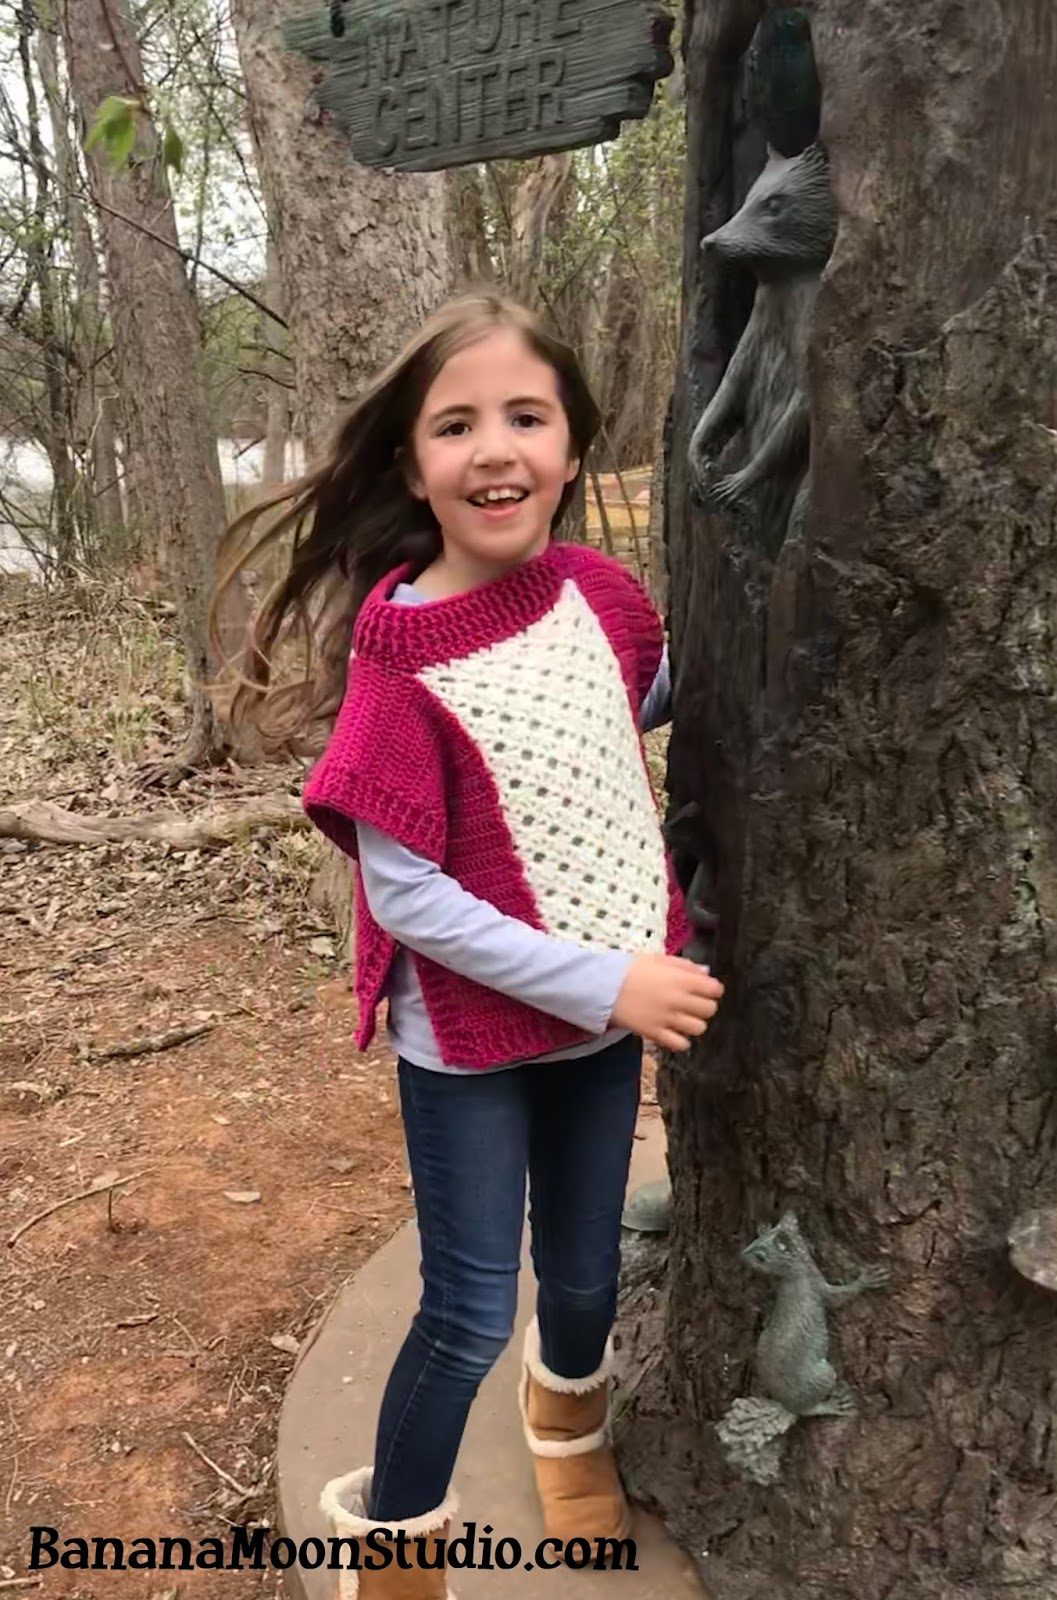 List of Free Crochet Patterns for Toddlers Ponchos Free Crochet Pattern For A Girls Poncho Roland Poncho Banana Moon